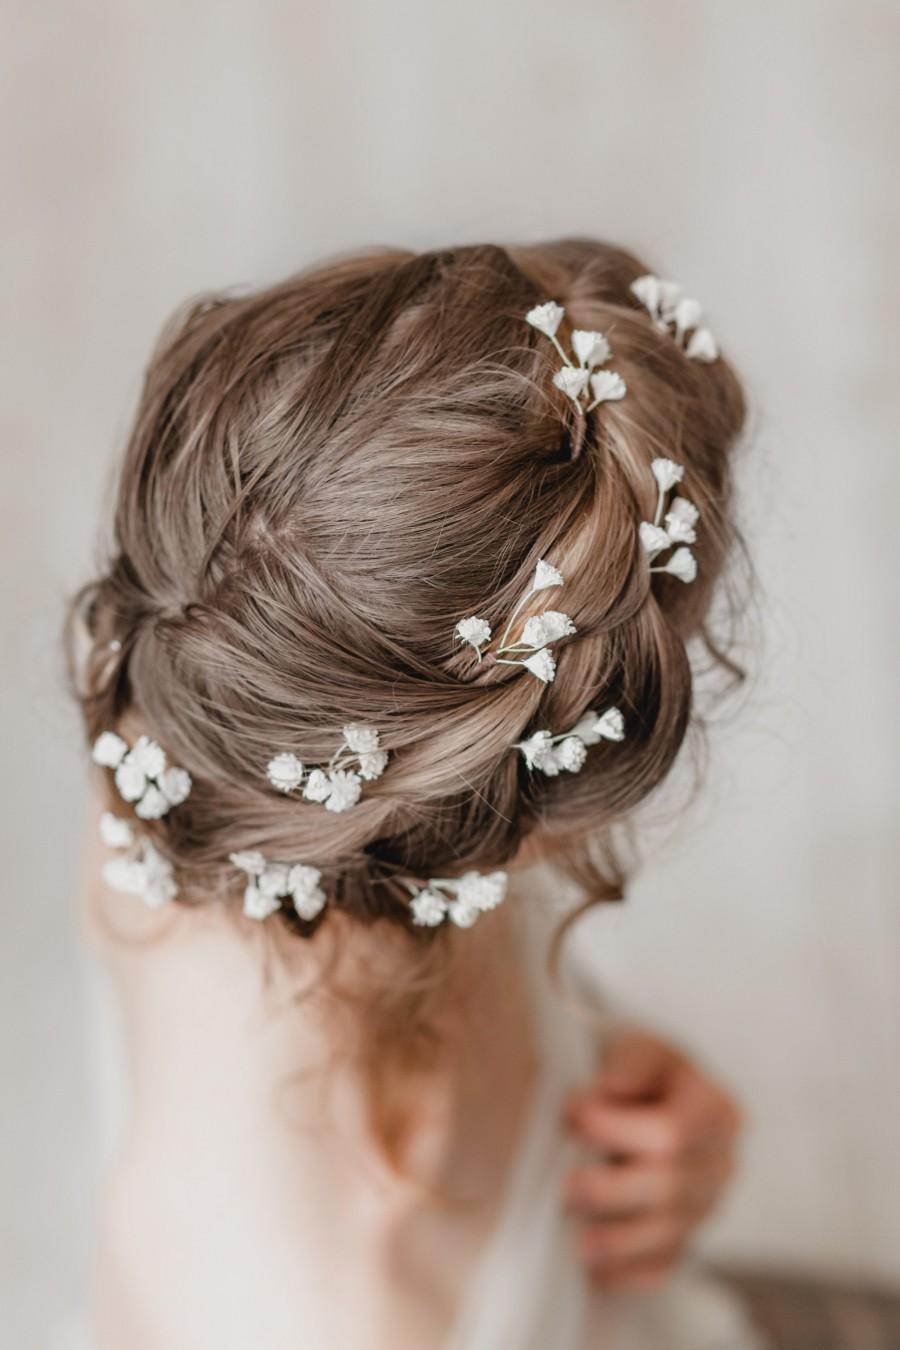 Mariage - Baby Breath Bridal Hair Piece, Rustic Wedding Hair Piece, Flower Hair Pin, Gypsophila Bobby Pin, Bridesmaid Hair Accessory, Floral Headpiece